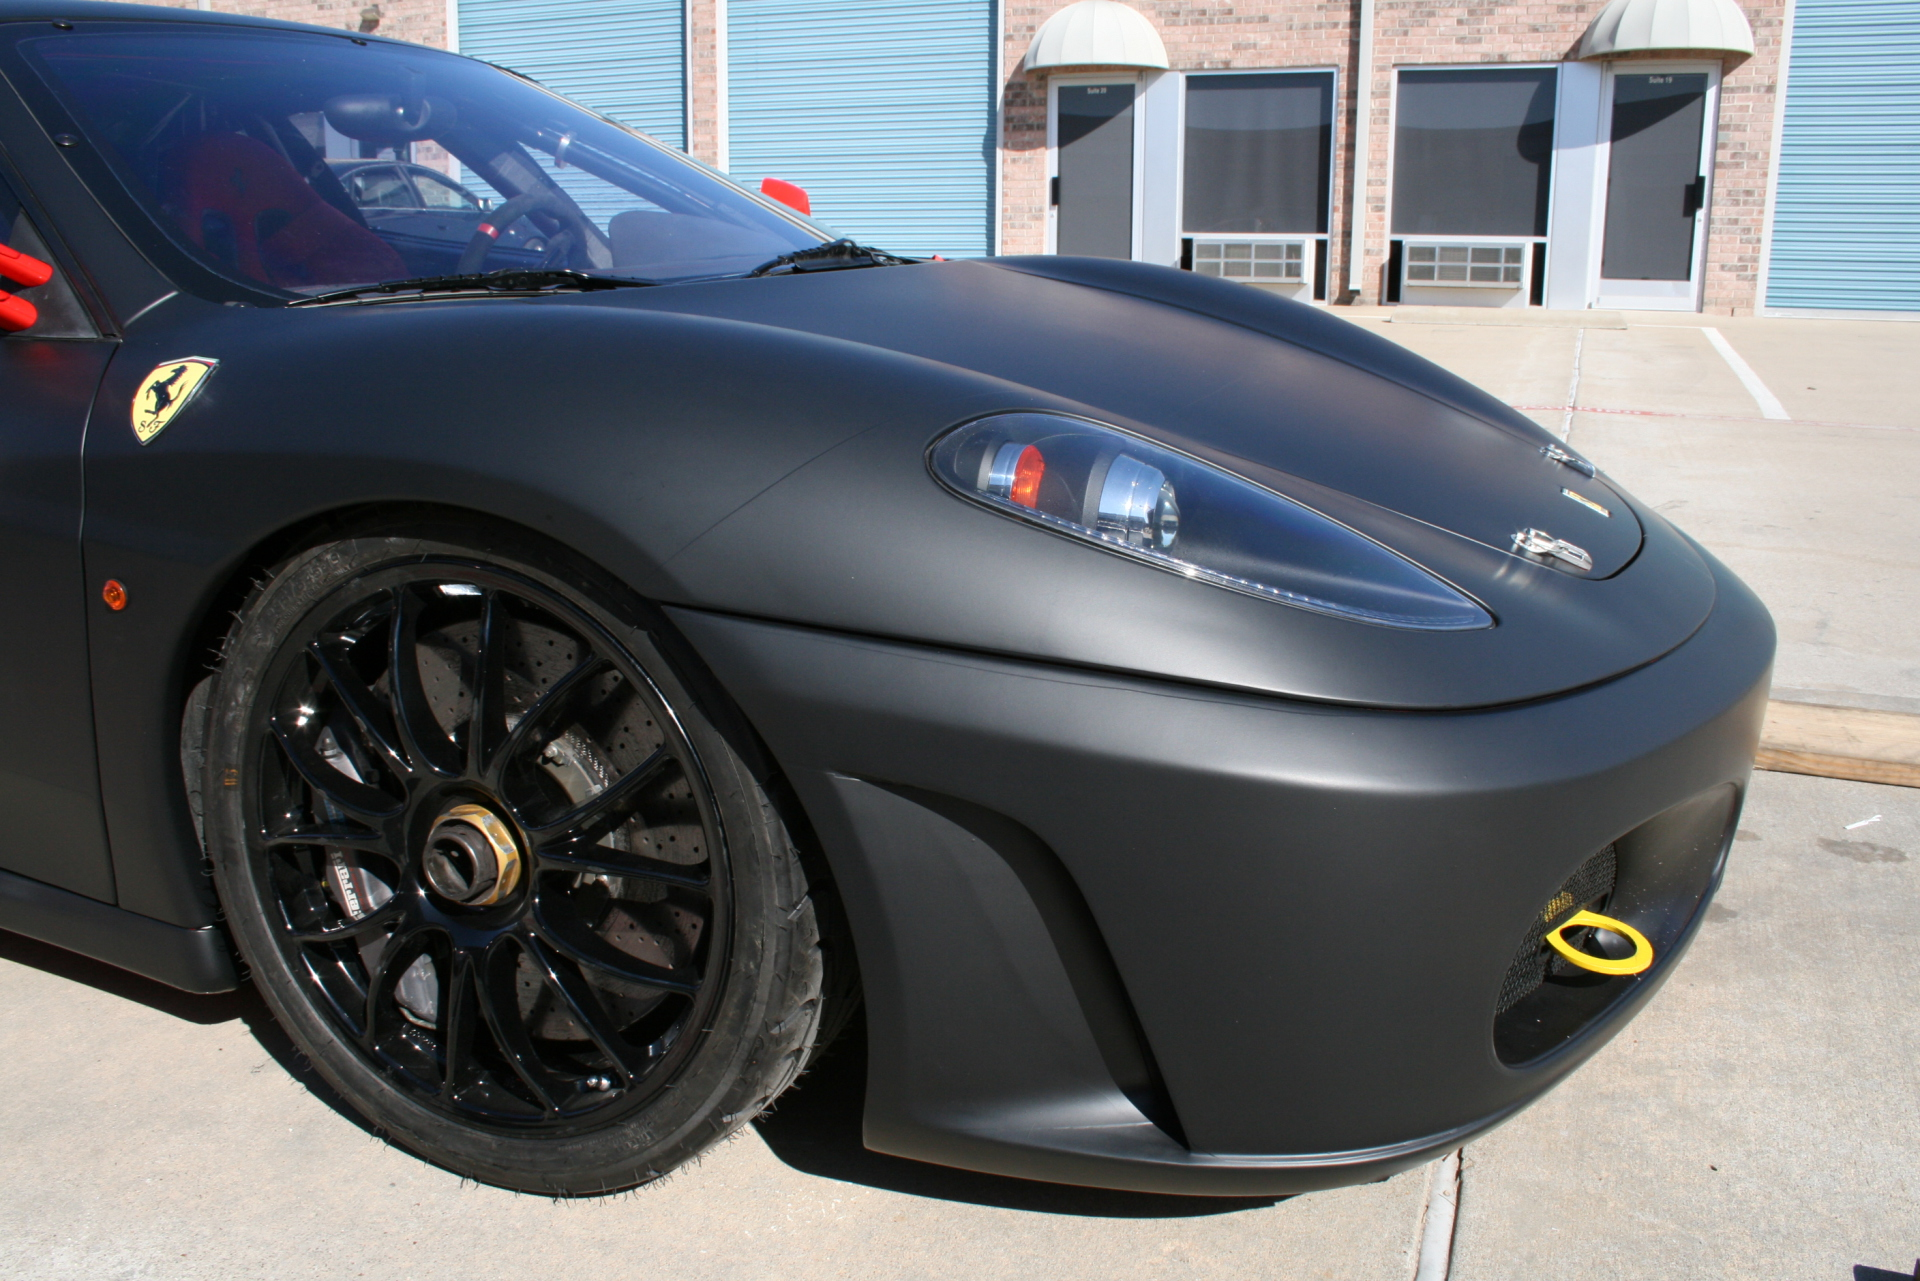 Matte wrap, vehicle wraps plano, vehicle wraps frisco, vehicle wraps dallas, vehicle wraps texas, best matte wraps dallas, best vehicle wraps dallas